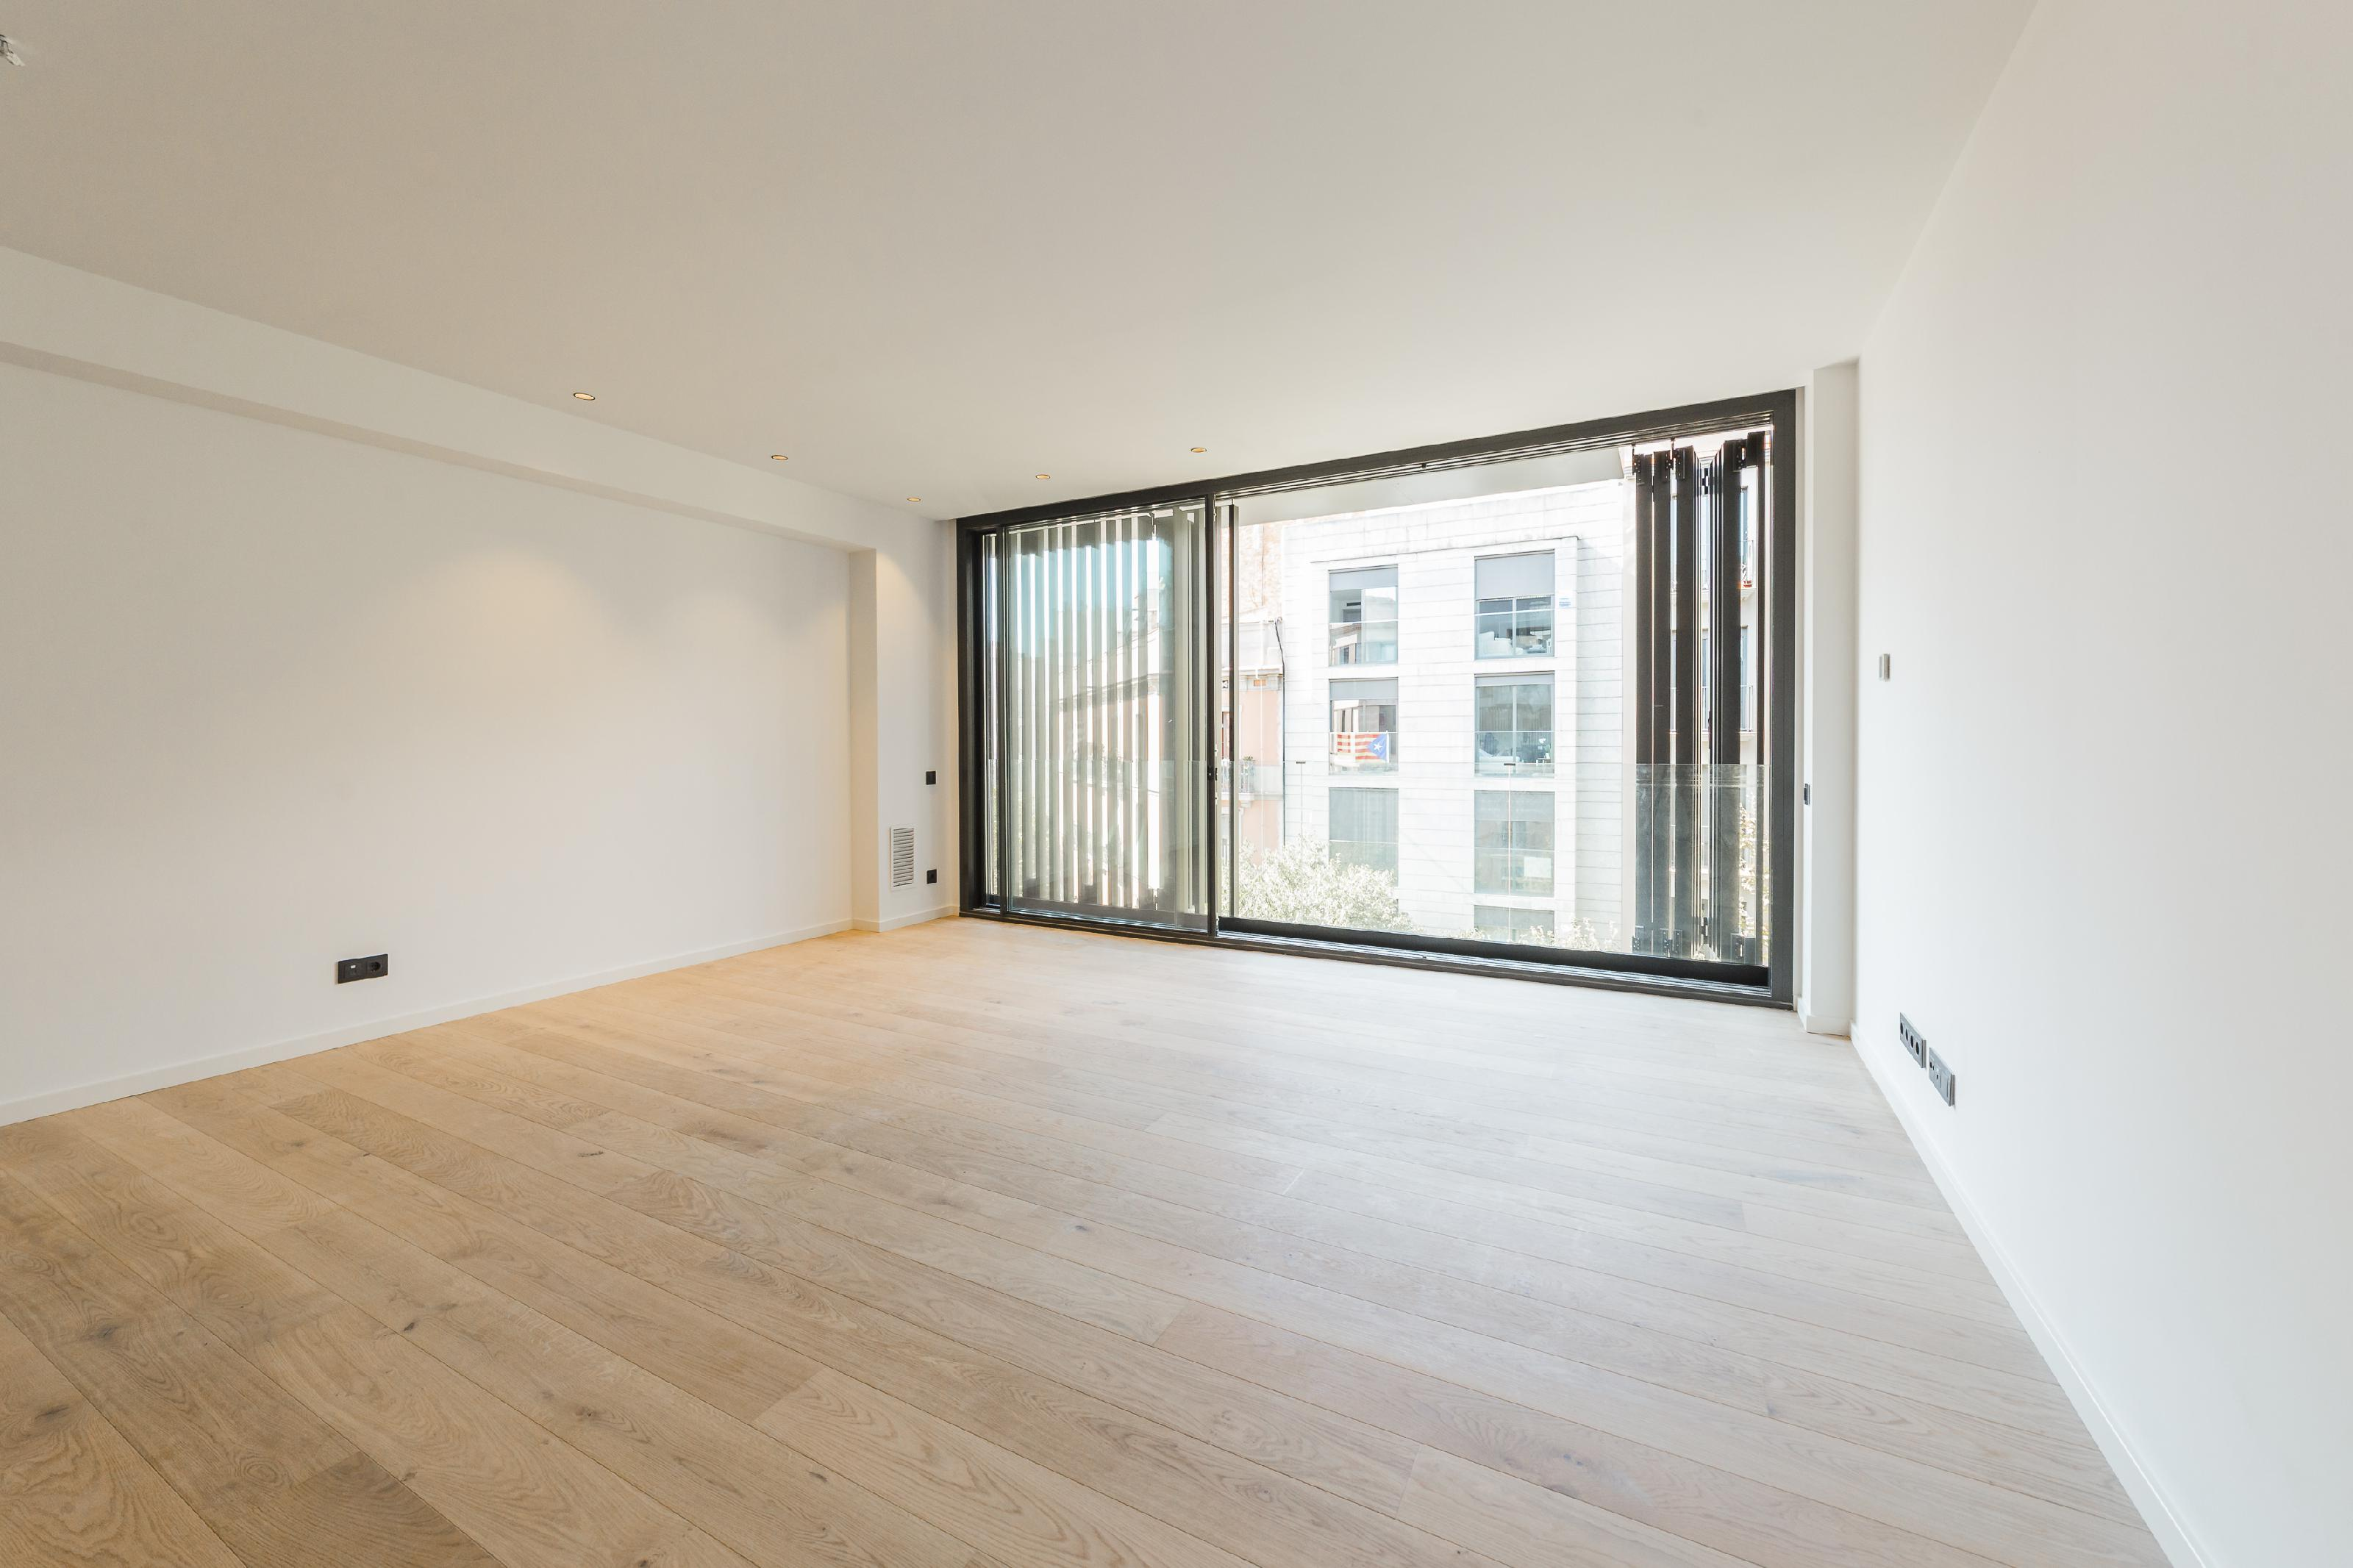 182474 Apartment for sale in Eixample, Old Left Eixample 8